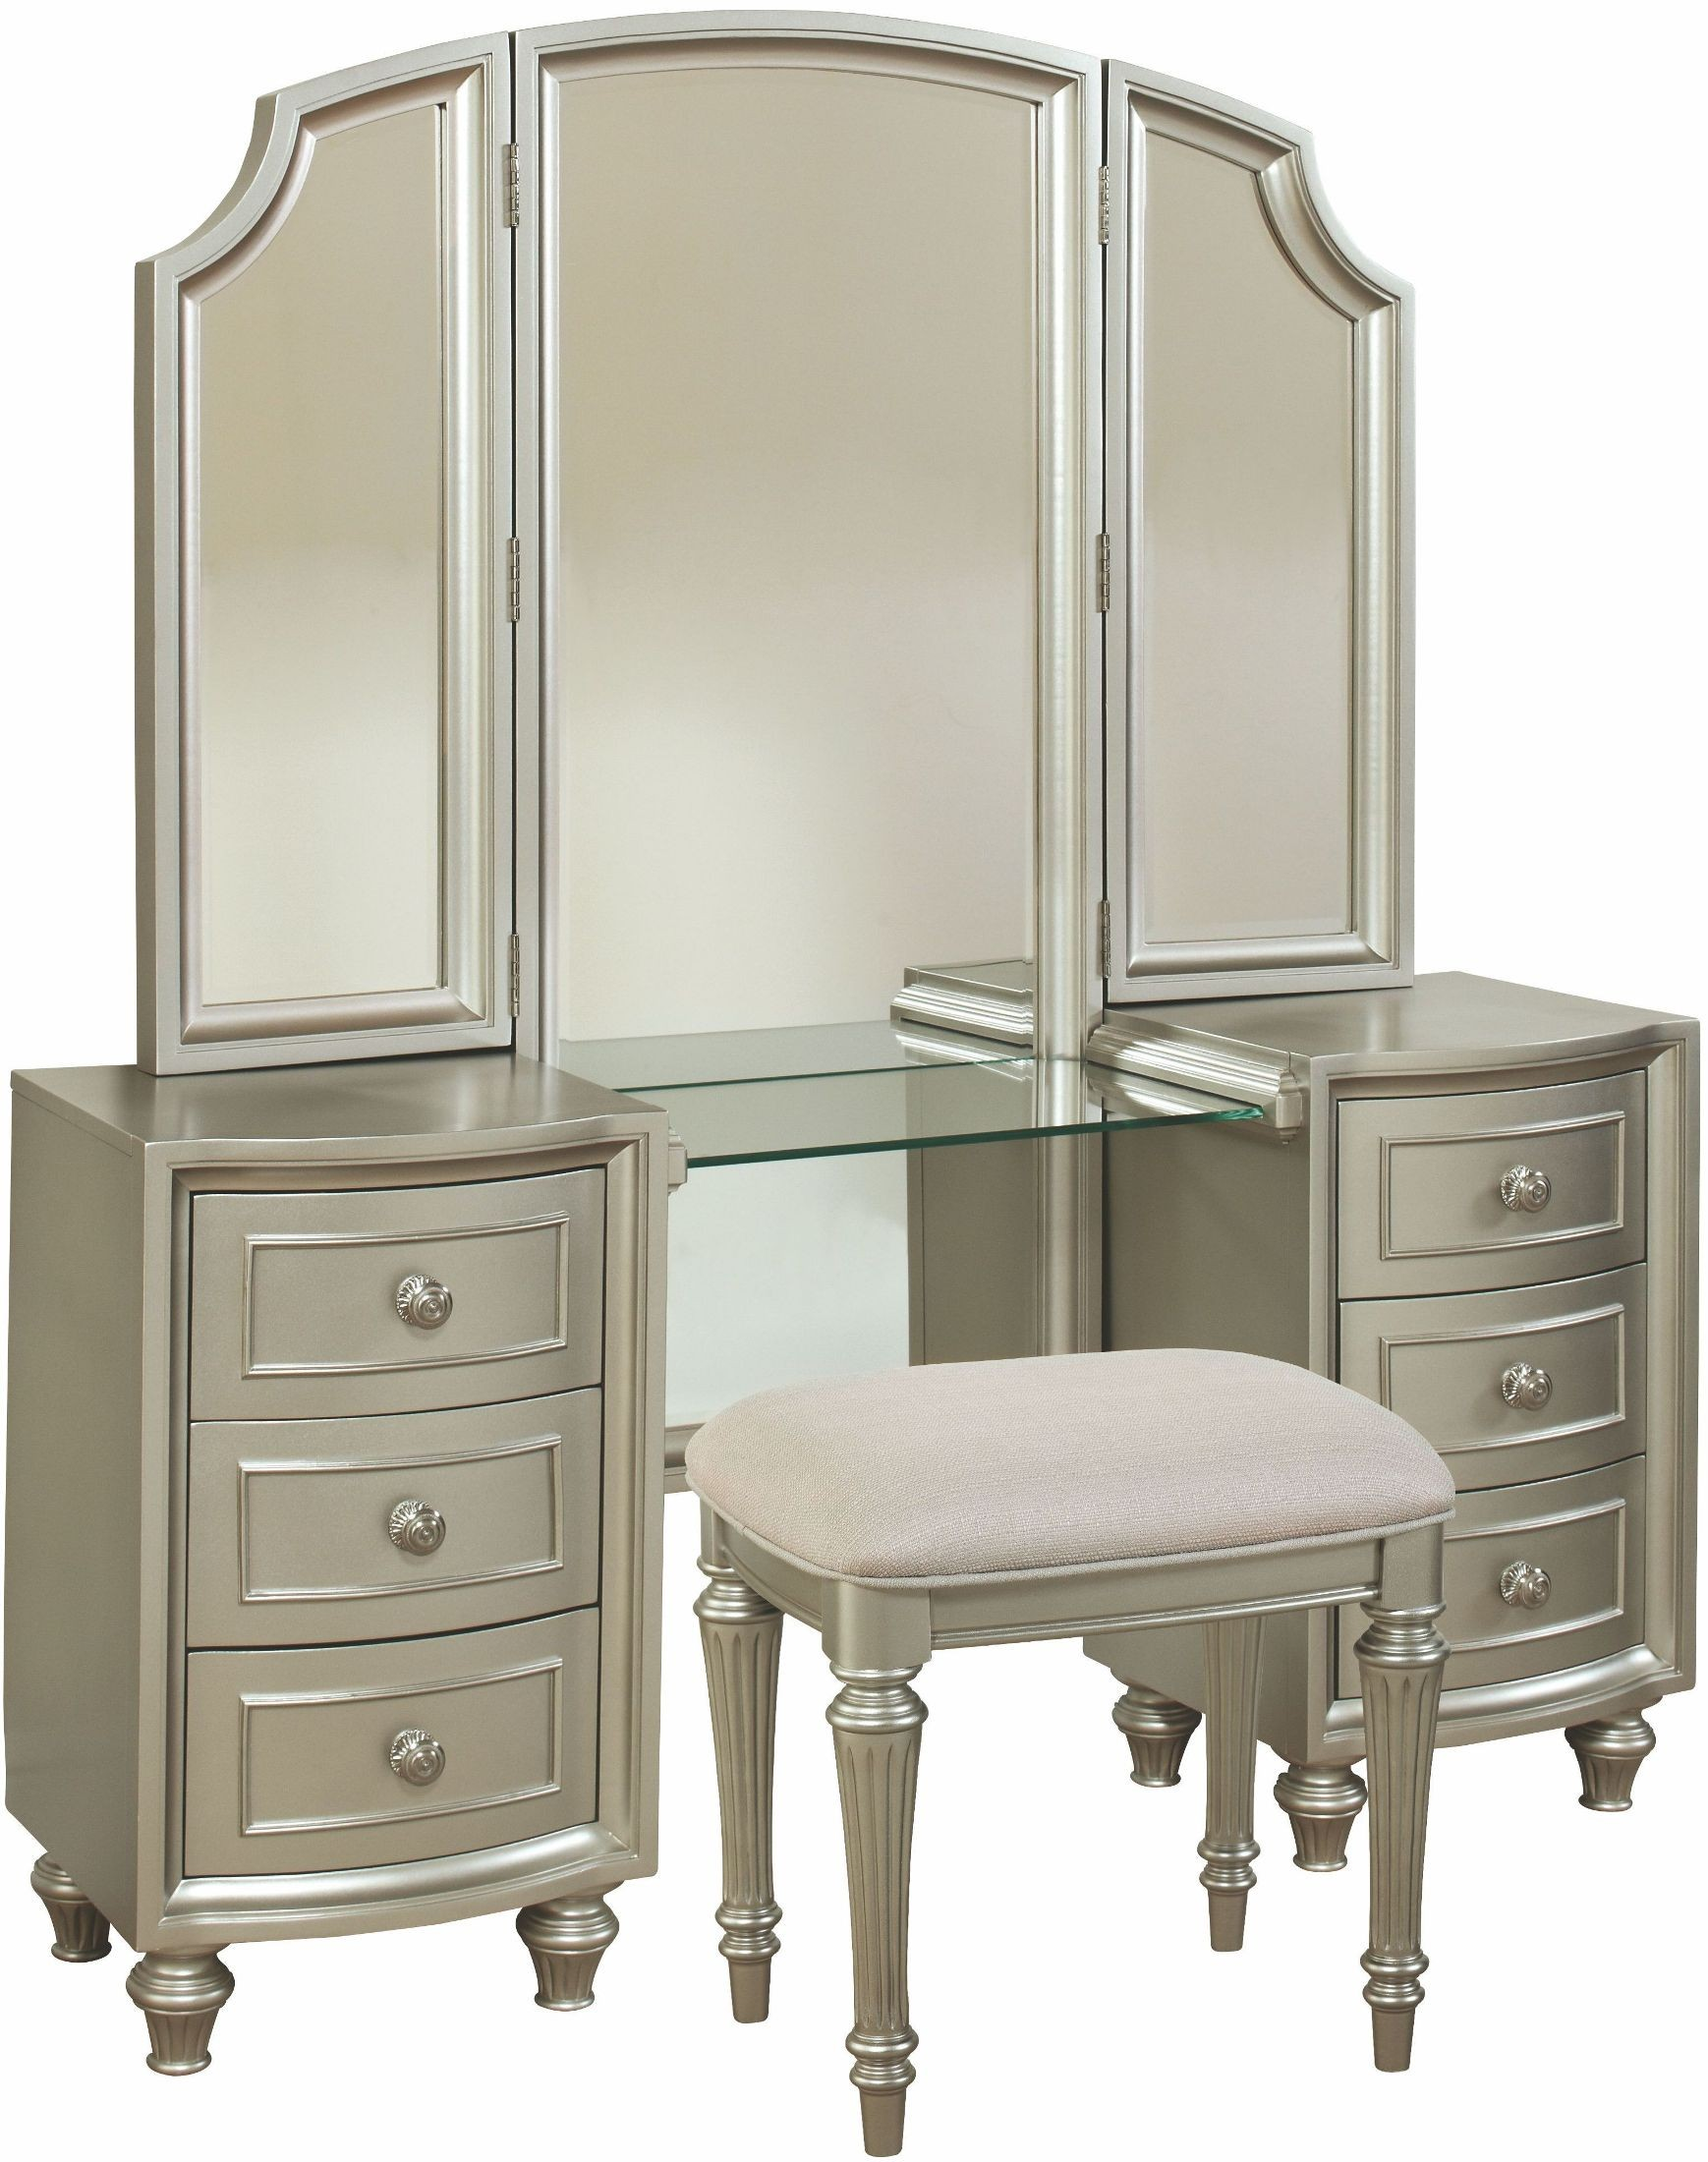 Regency Park Pearlized Silver Panel Bedroom Set, B00481-5H